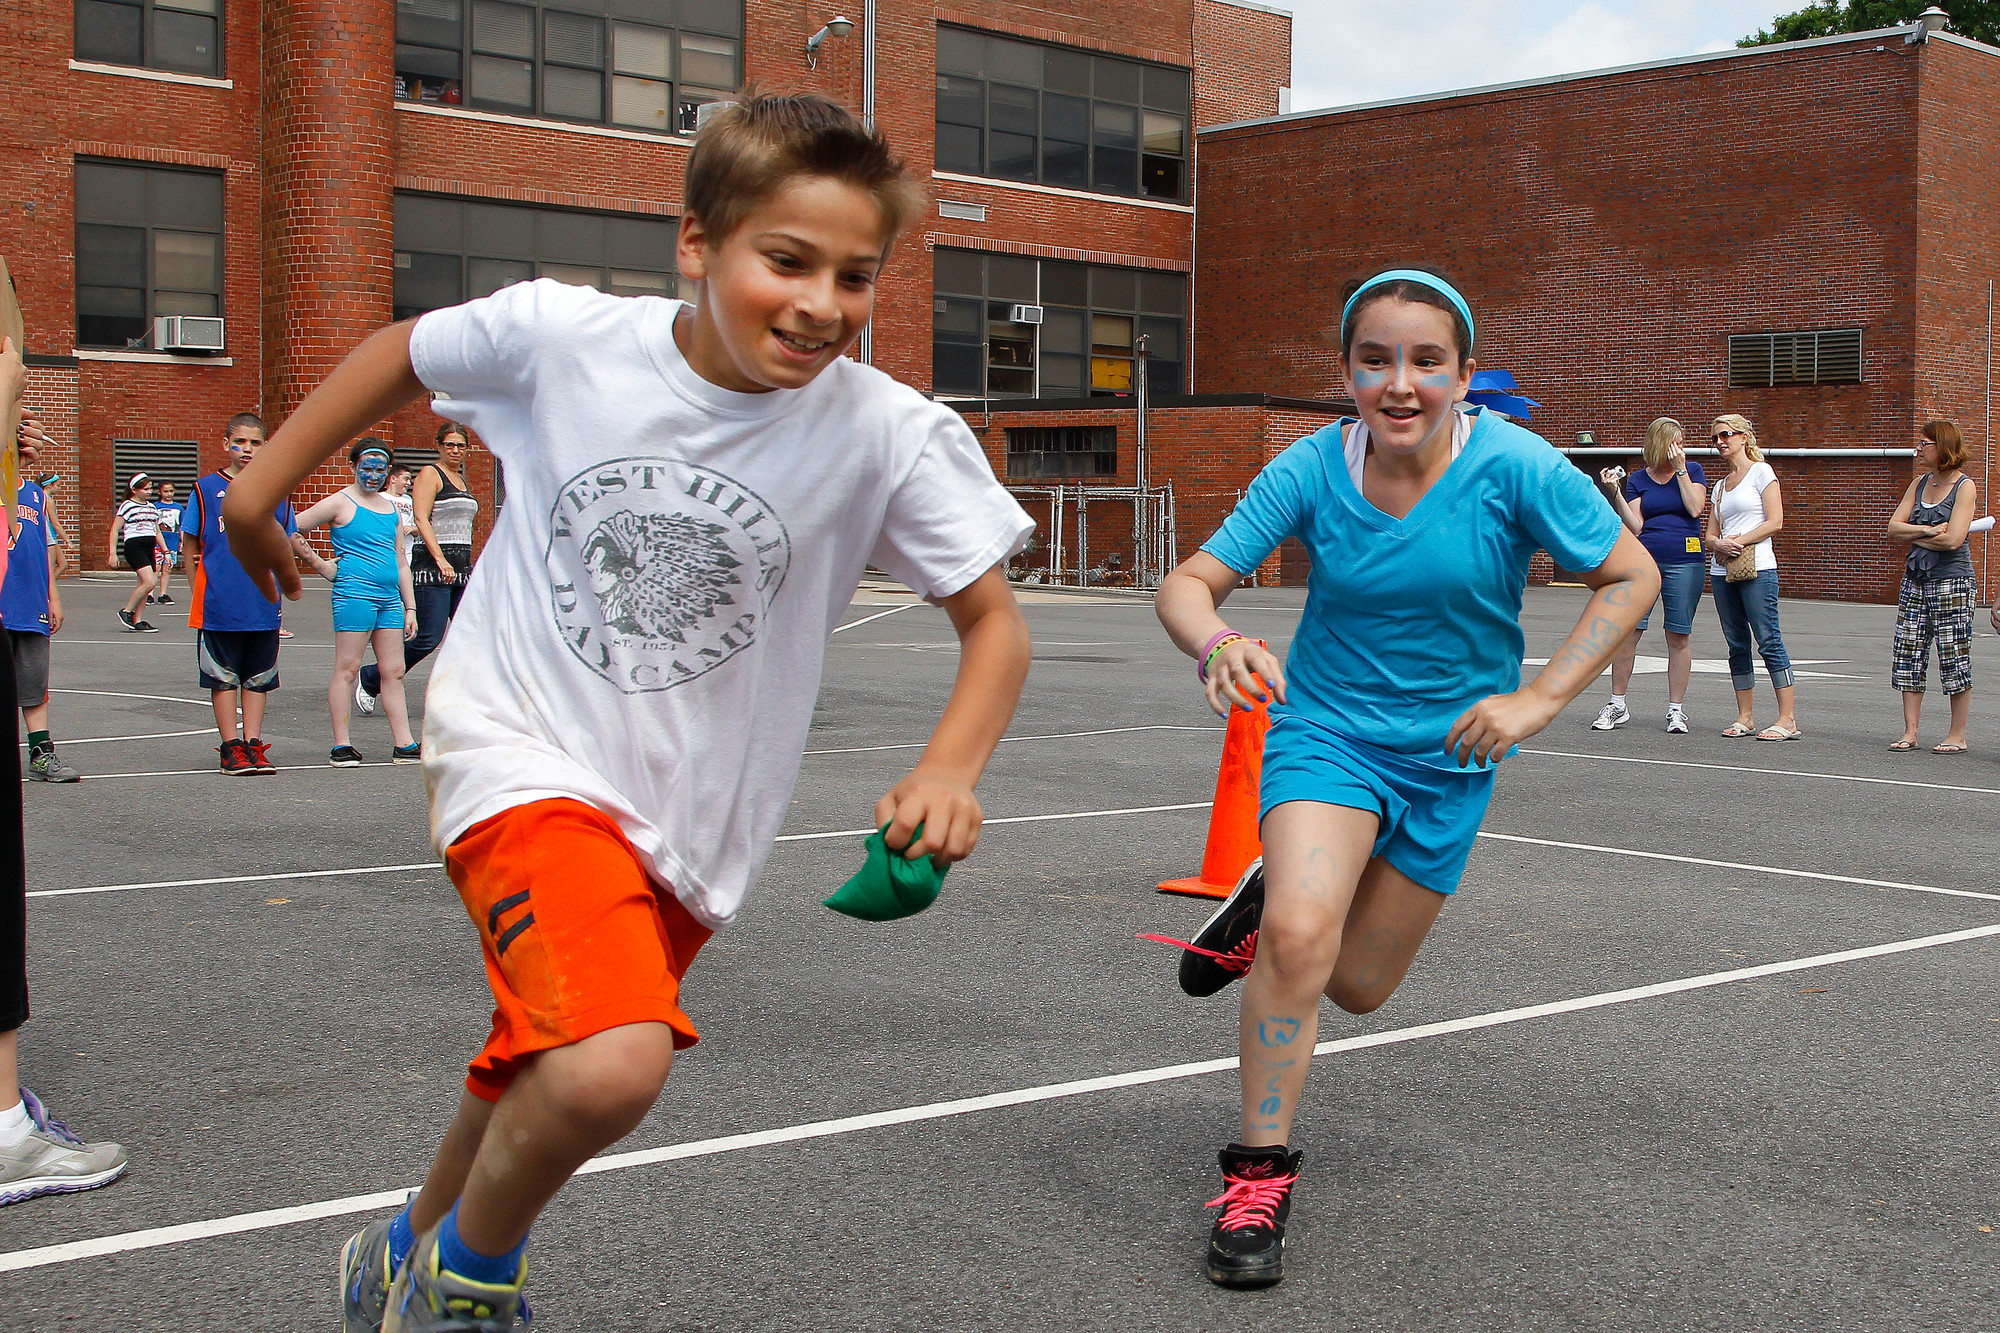 Fourth-grader Jared Raso tried to outrun Samantha Bergman while playing capture the flag.